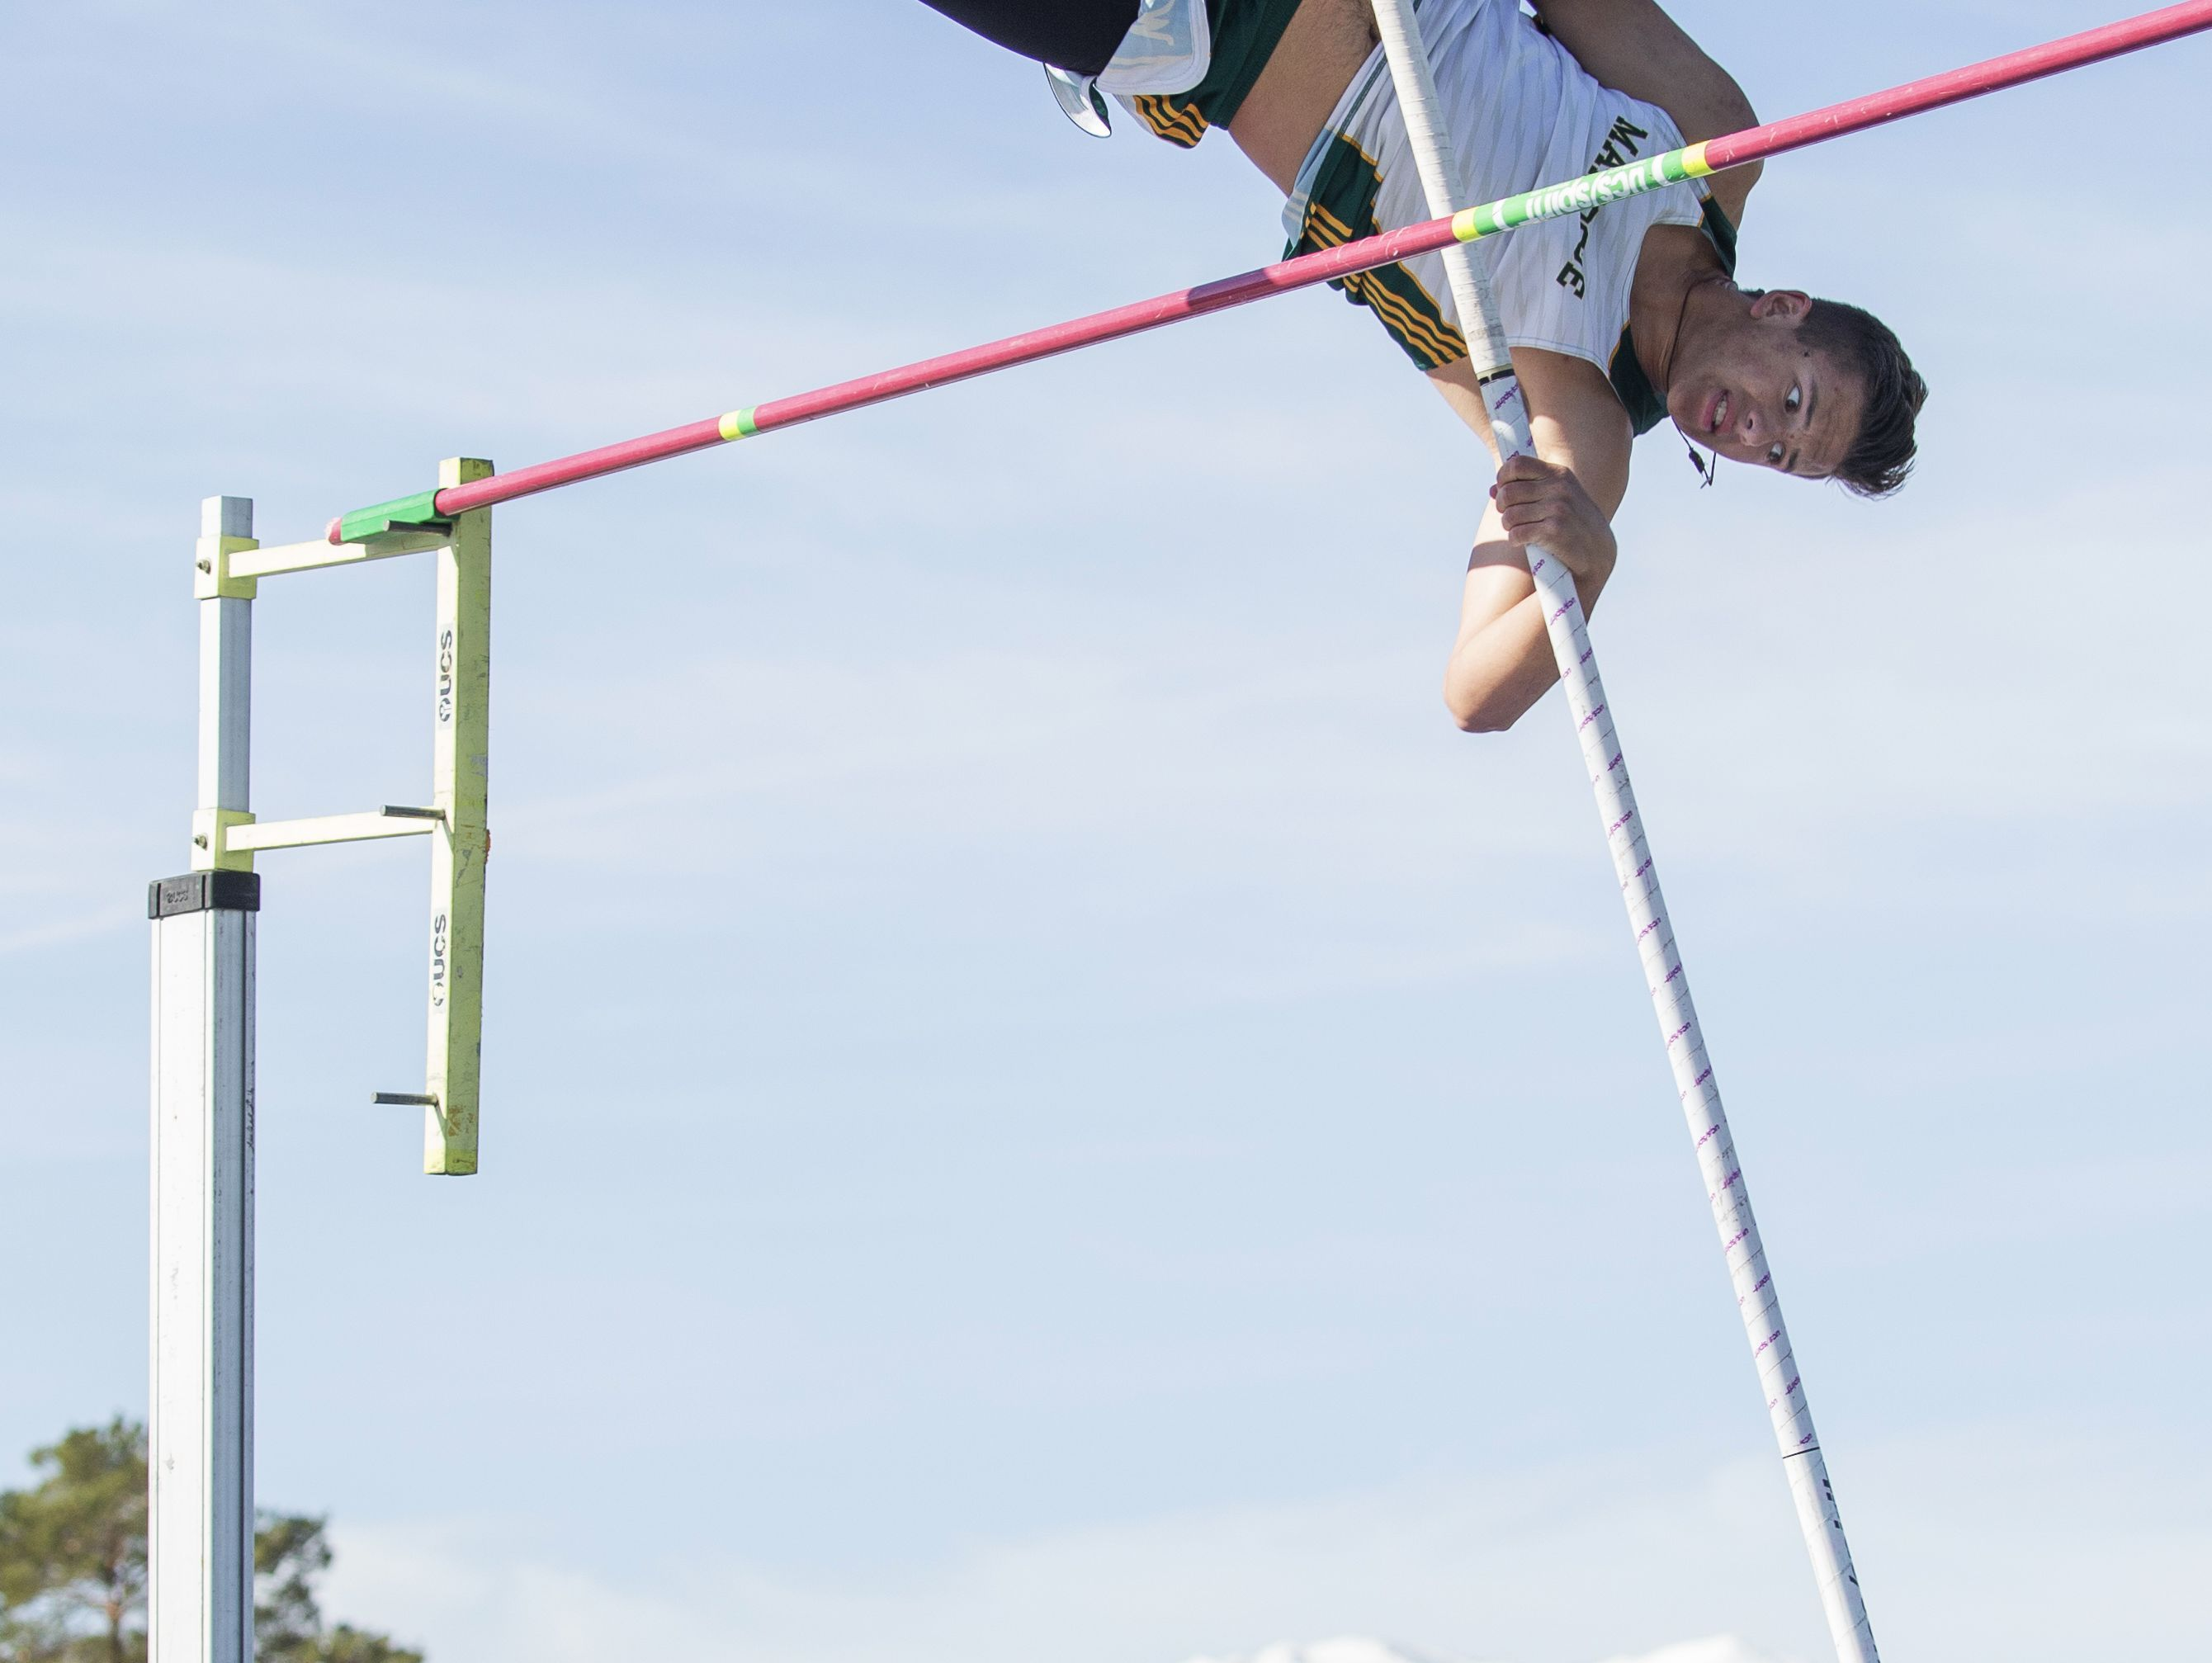 Bishop Manogue's Max Crow competes in the boys pole vault during the Reed Sparks Rotary Invitational track and field event at Reed on Saturday.